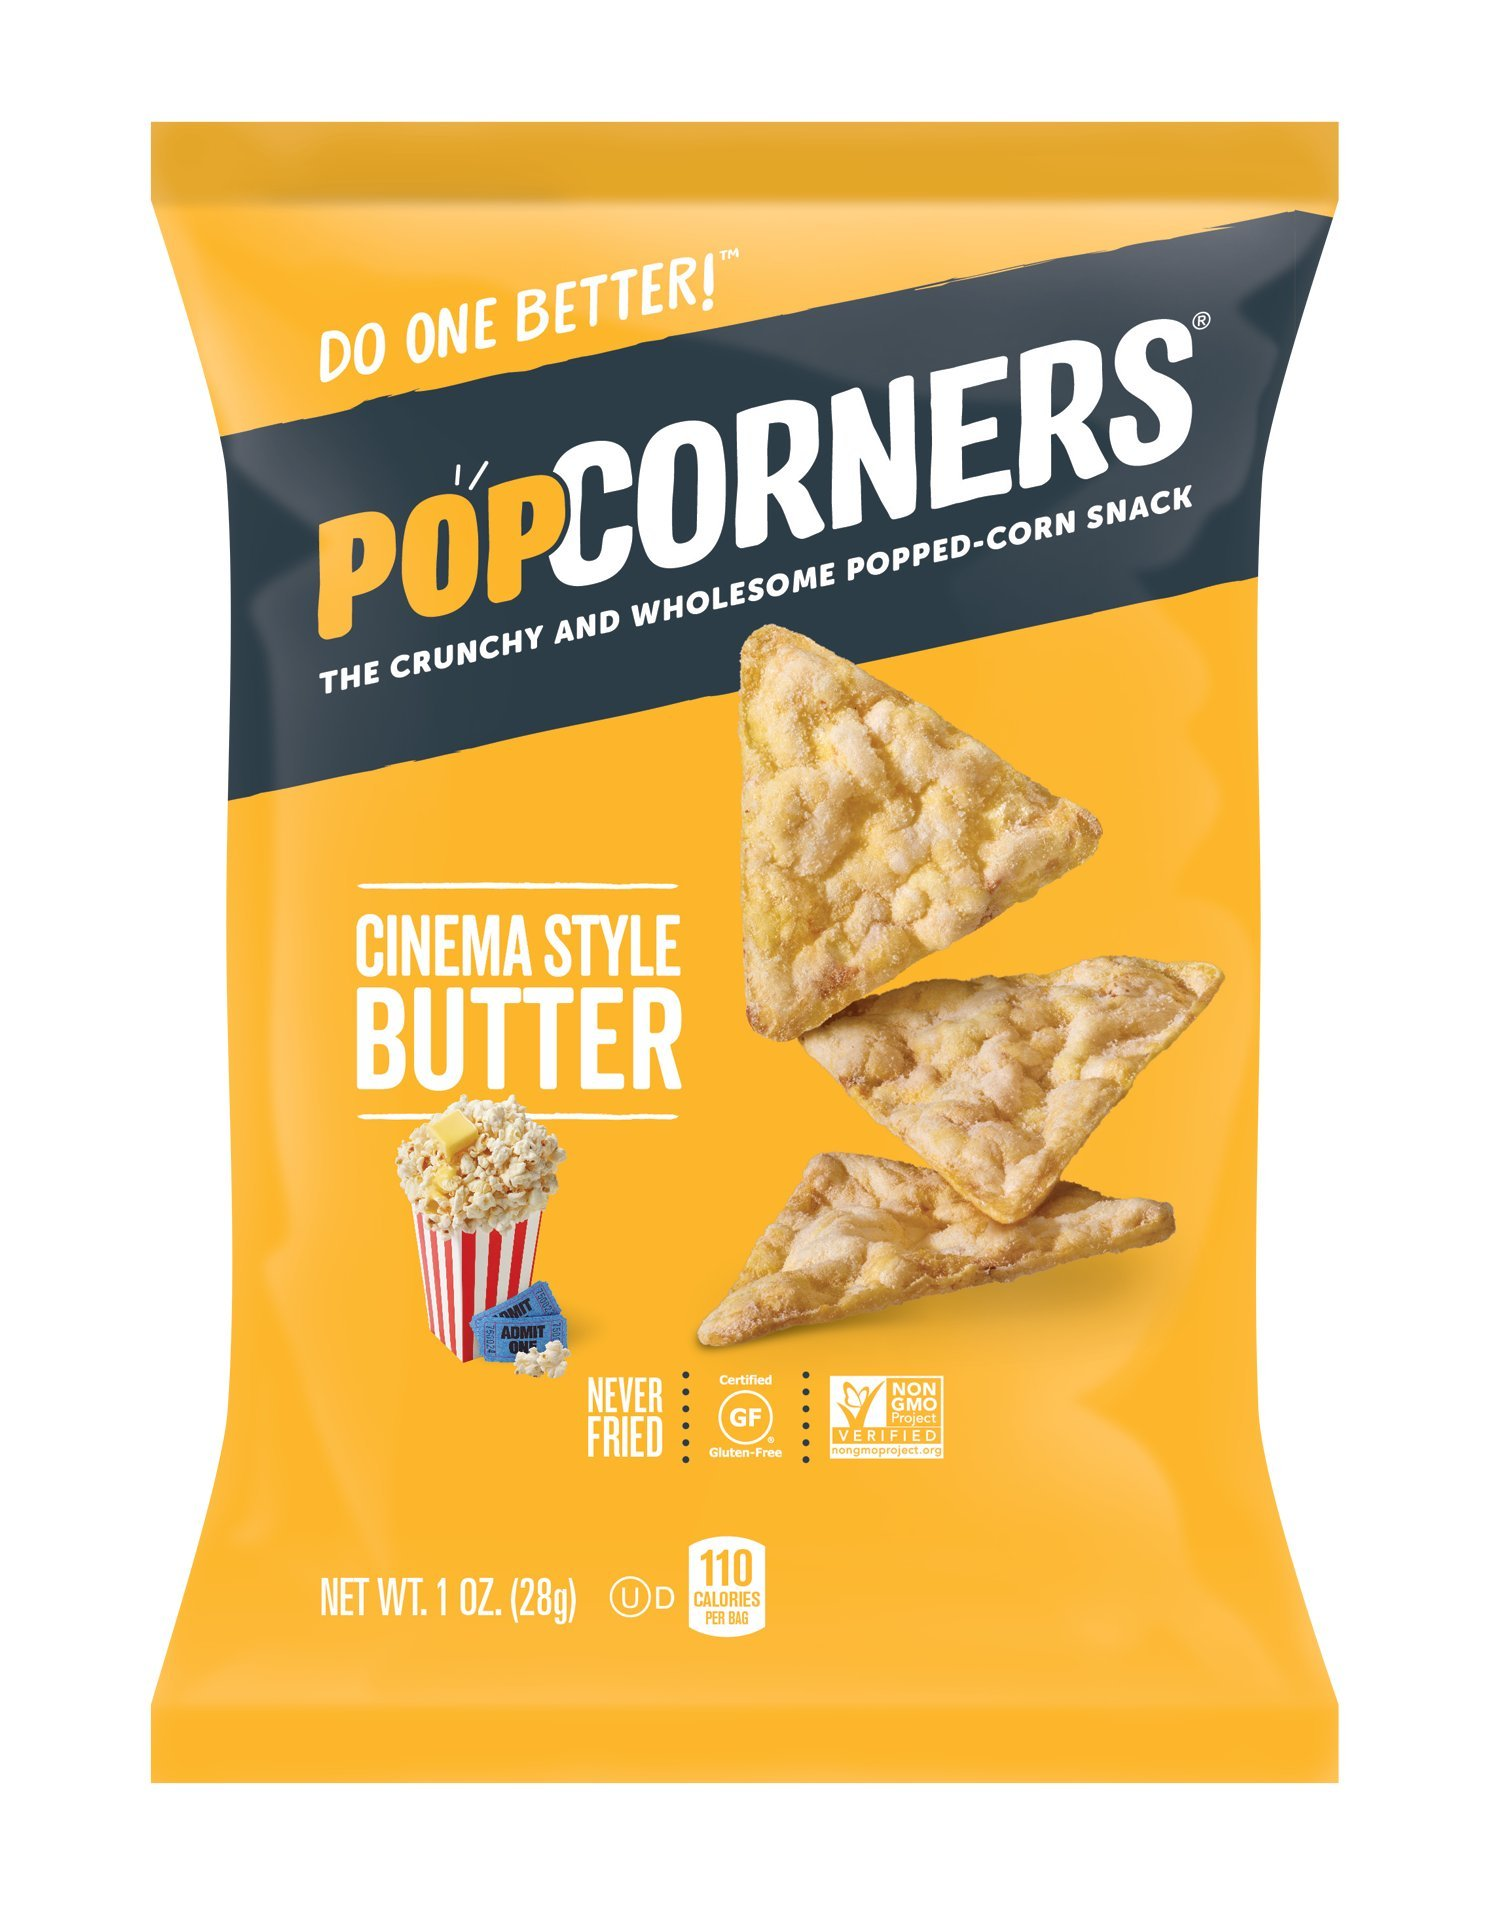 PopCorners Cinema Style Butter Snack Pack | Gluten Free Snack | (40 Pack, 1 oz Snack Bags) by Popcorners